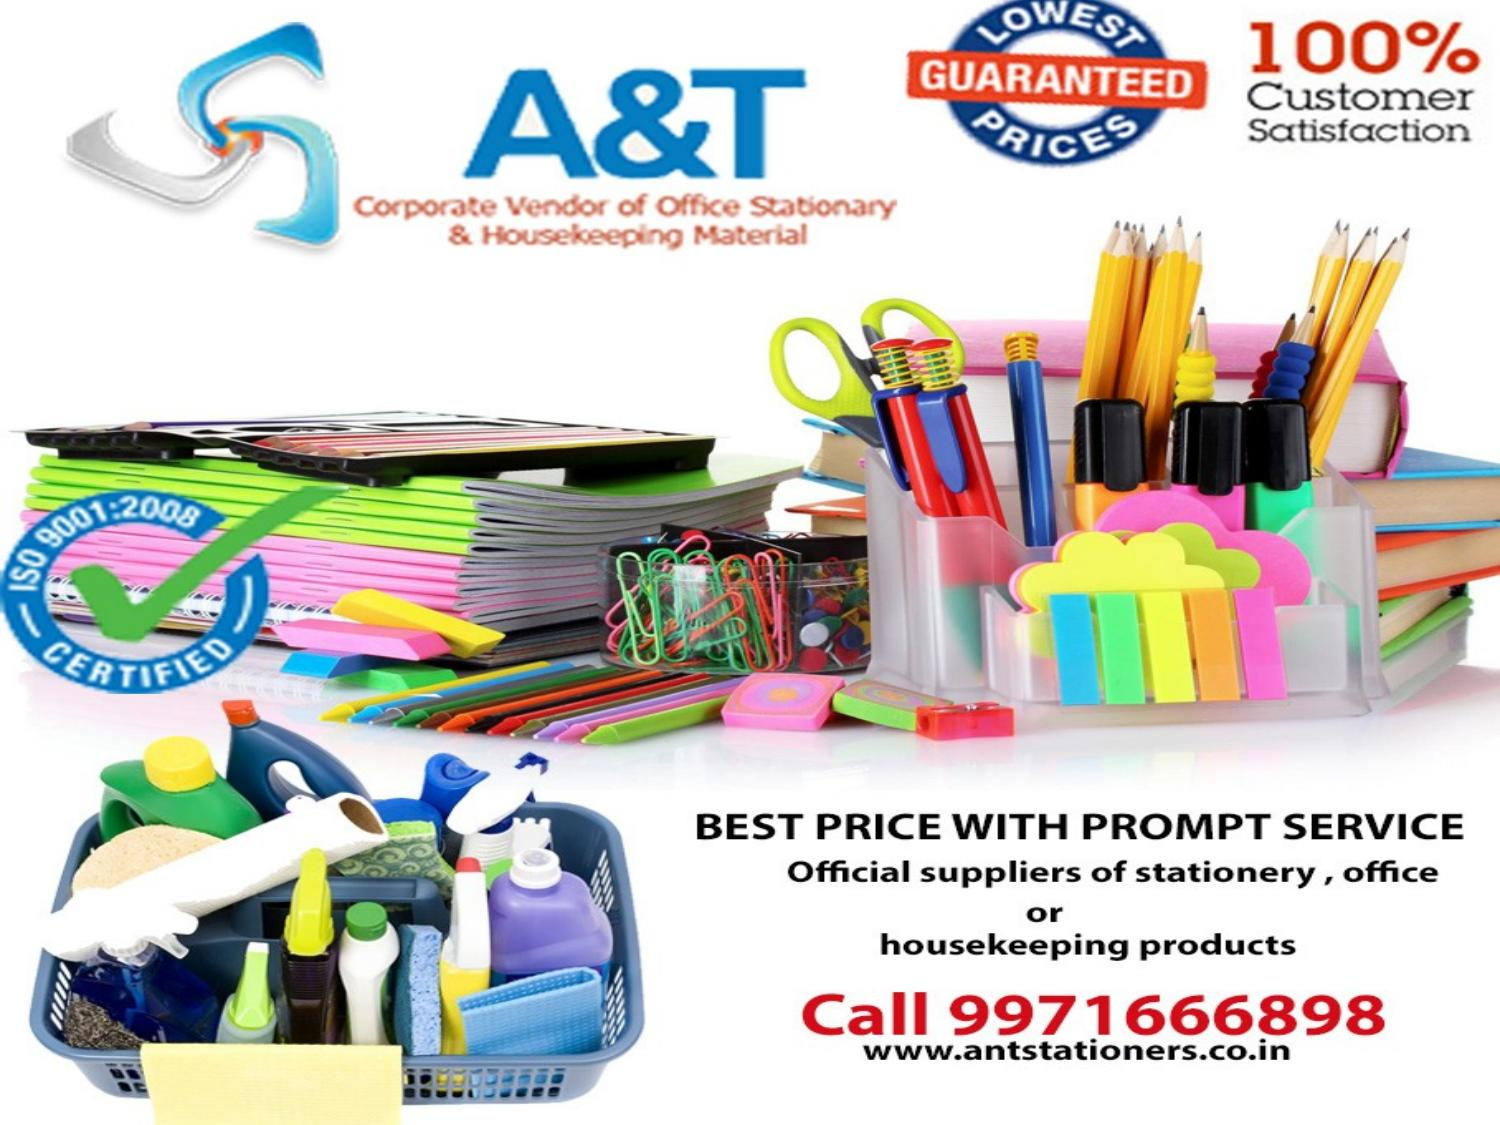 Get The Best Distributor Or Supplier Of Office Stationery In Gurgaon By Ant Stationers Issuu